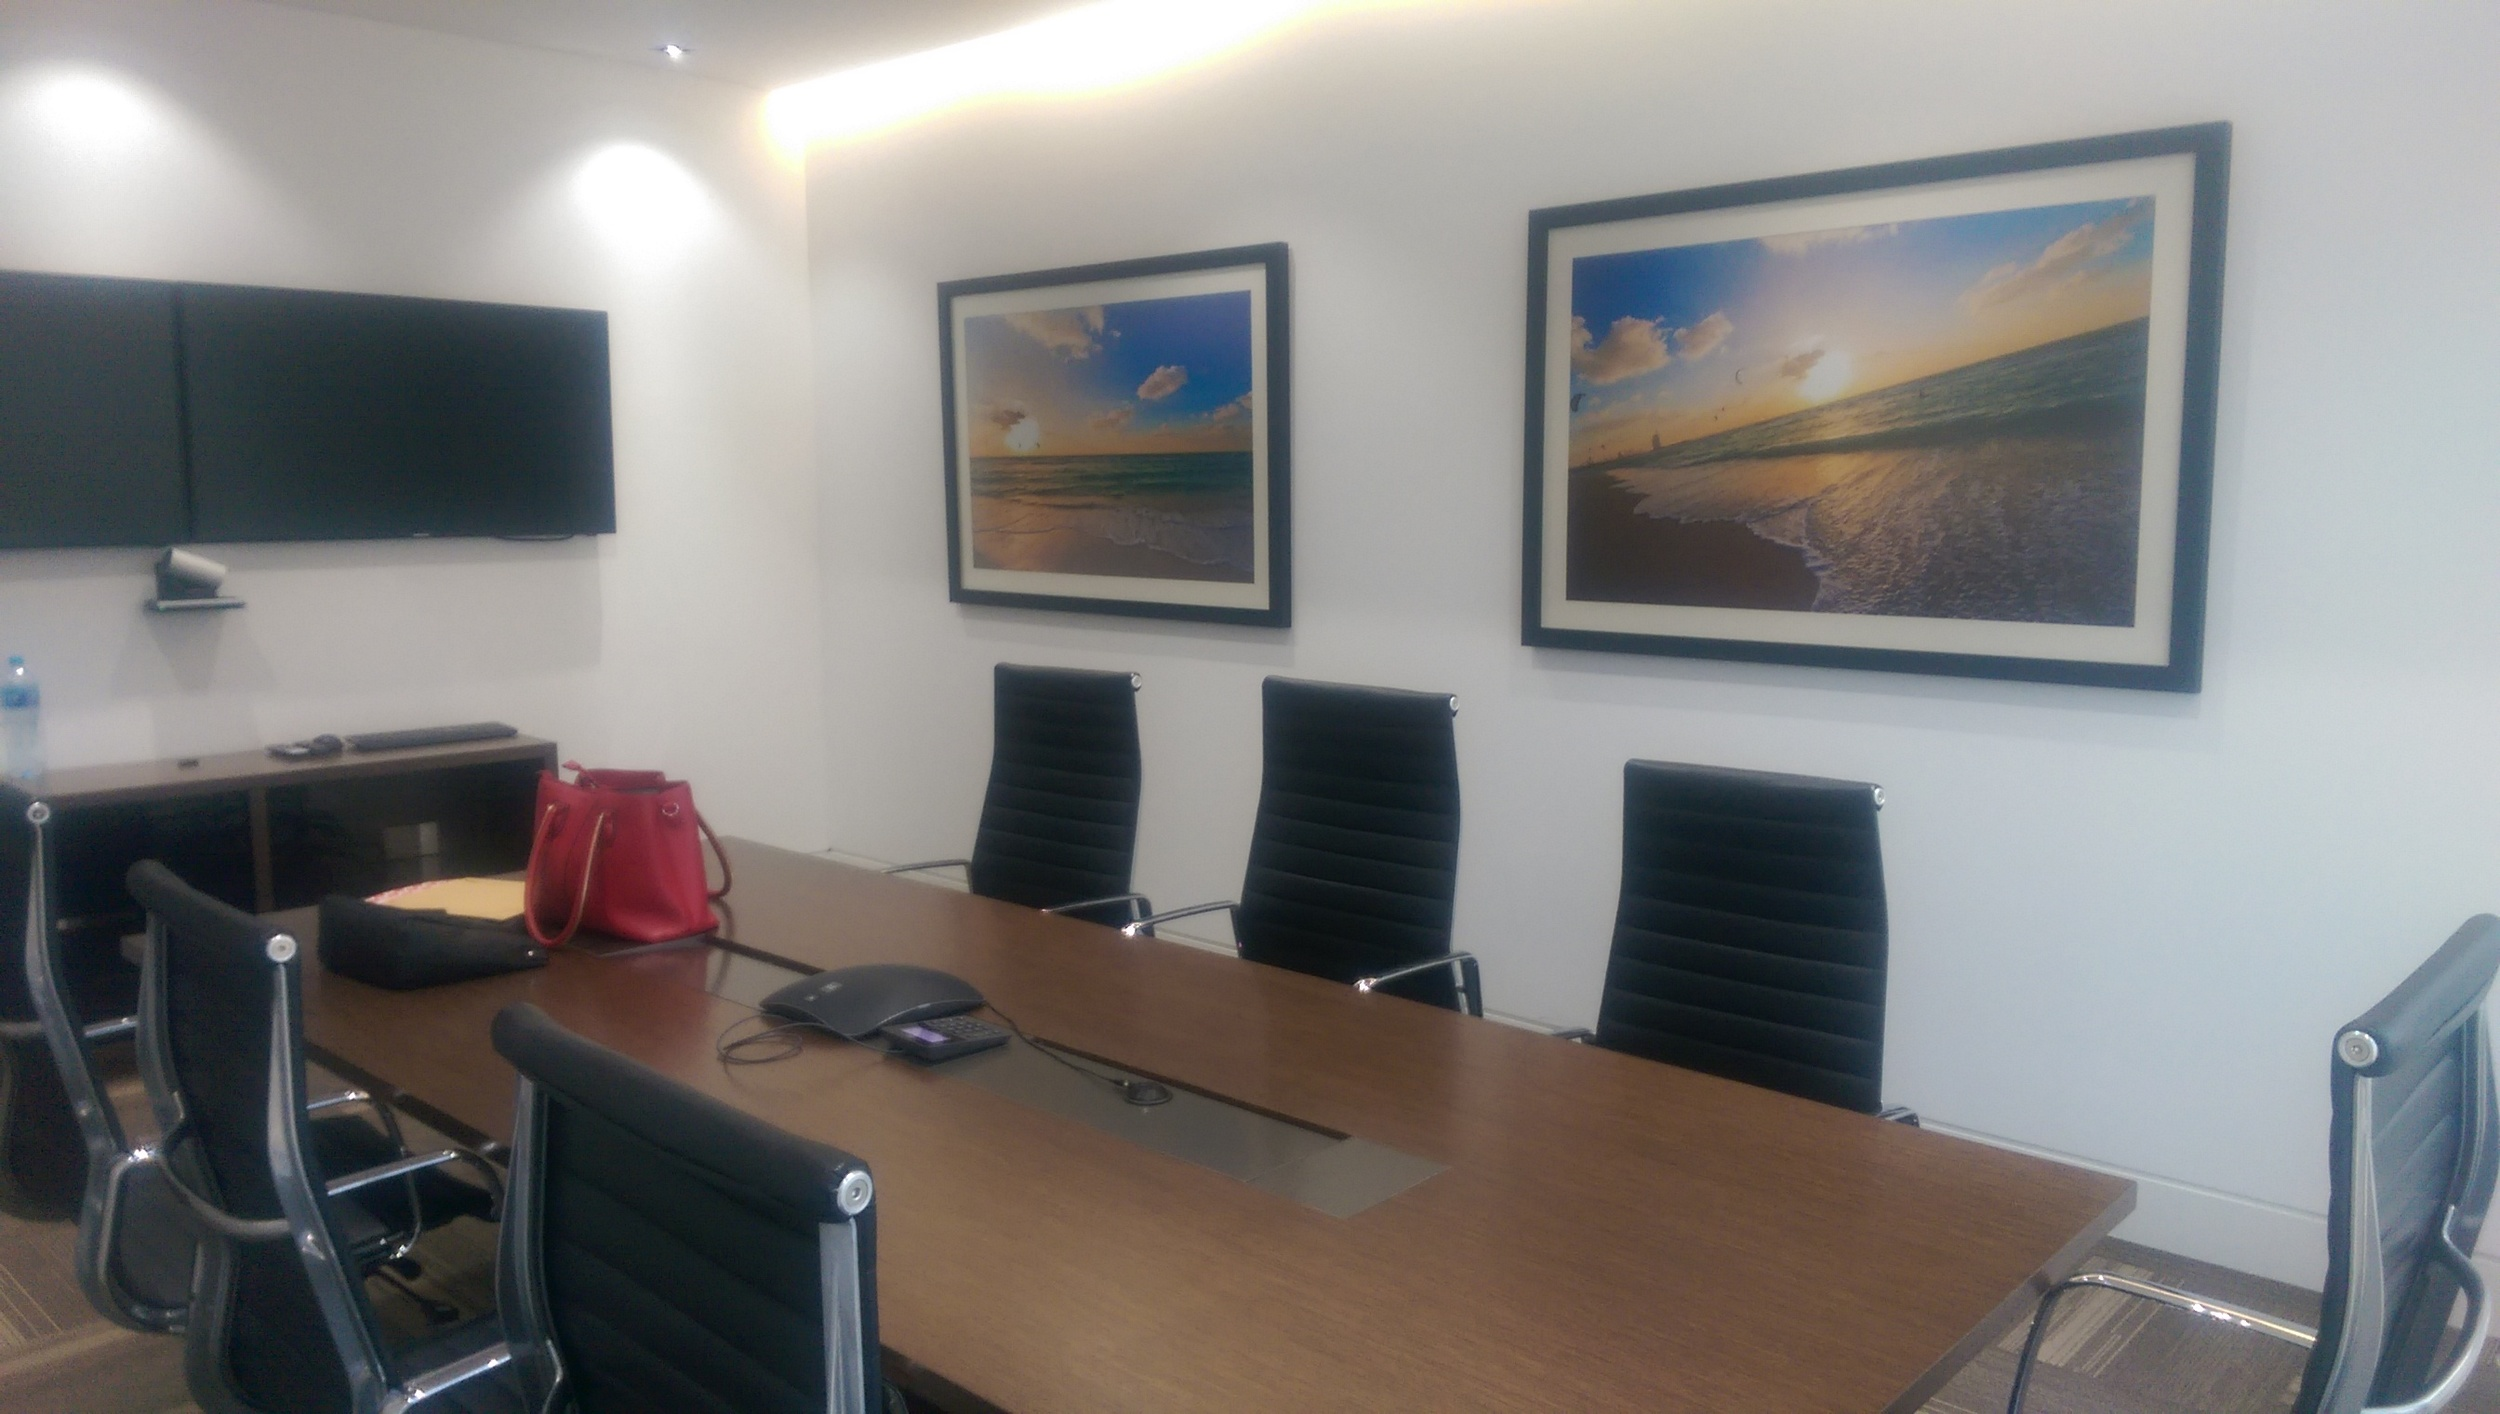 Pixelesque Photography in a private office